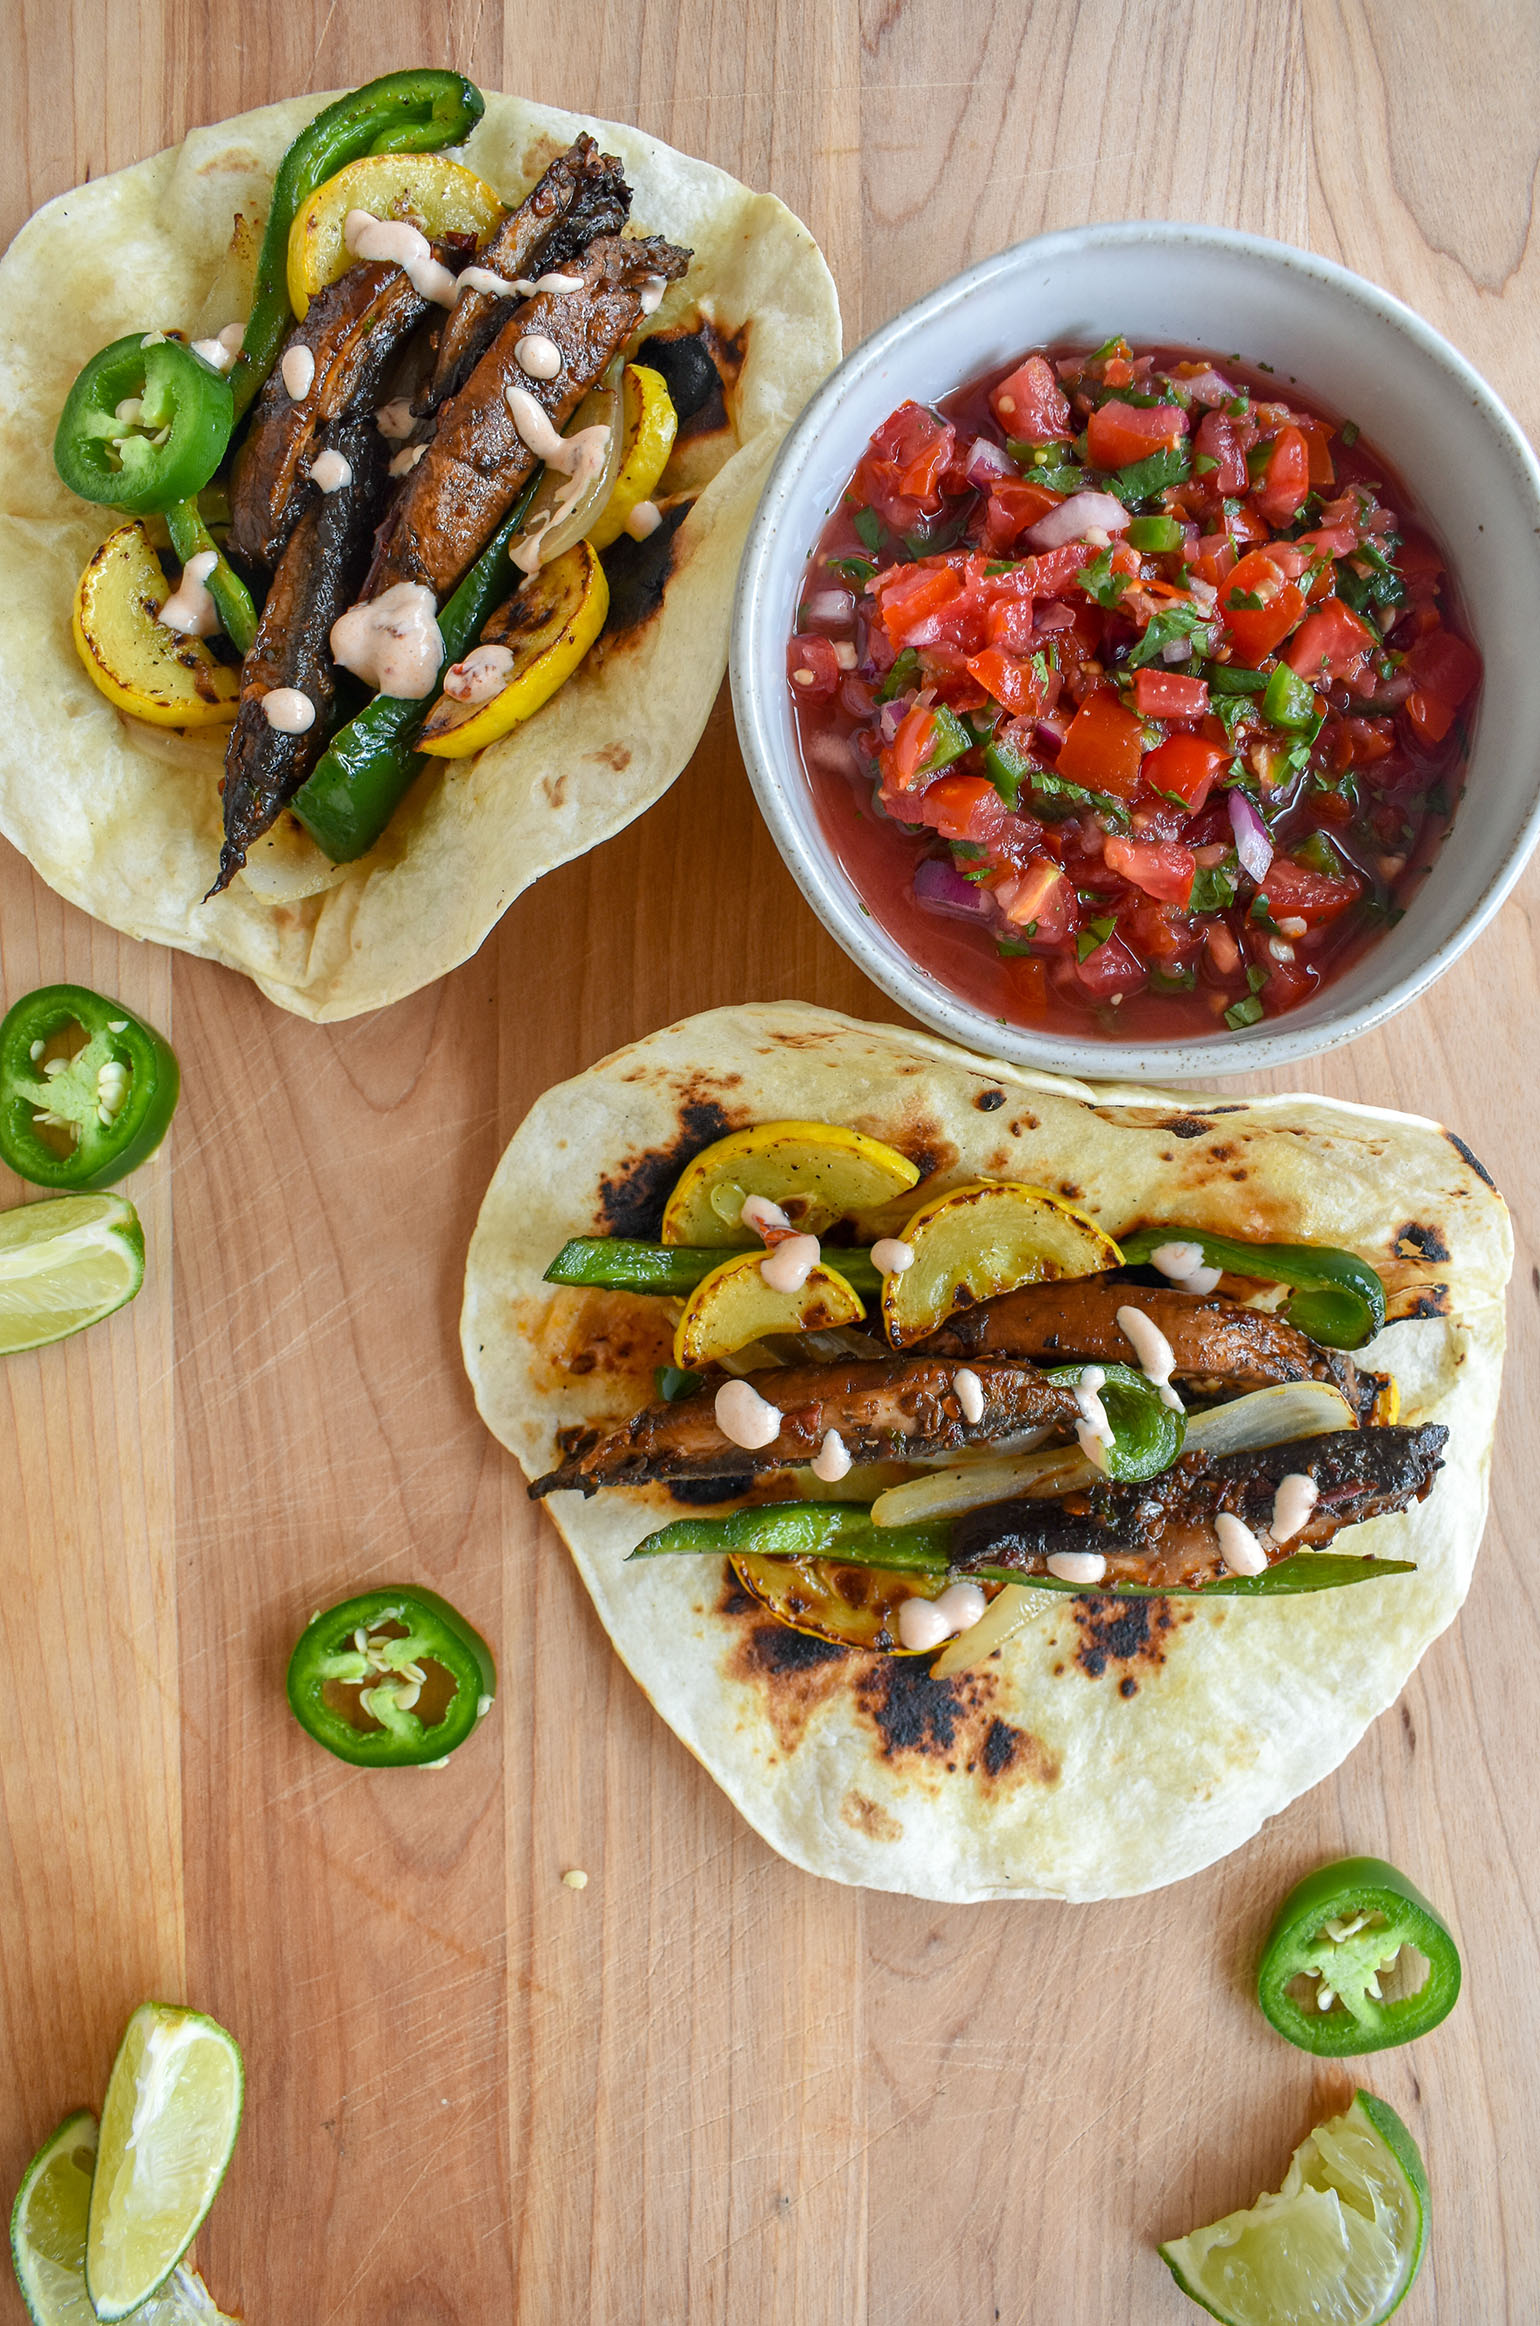 Chipotle Portobello Mushroom Fajitas and Homemade Tomato Salsa